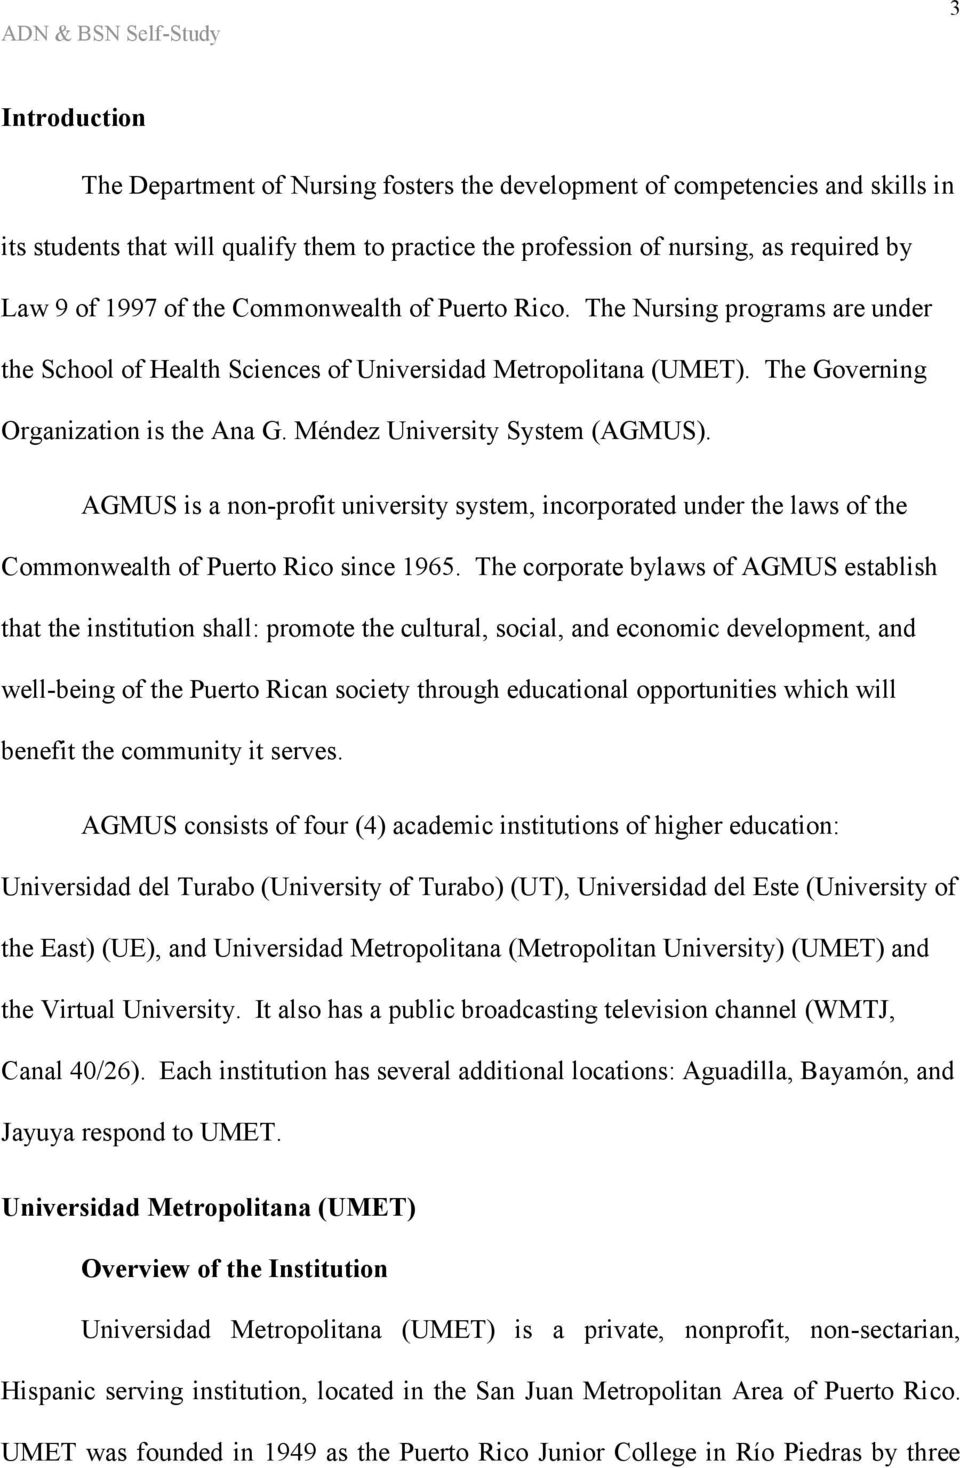 Méndez University System (AGMUS). AGMUS is a non-profit university system, incorporated under the laws of the Commonwealth of Puerto Rico since 1965.